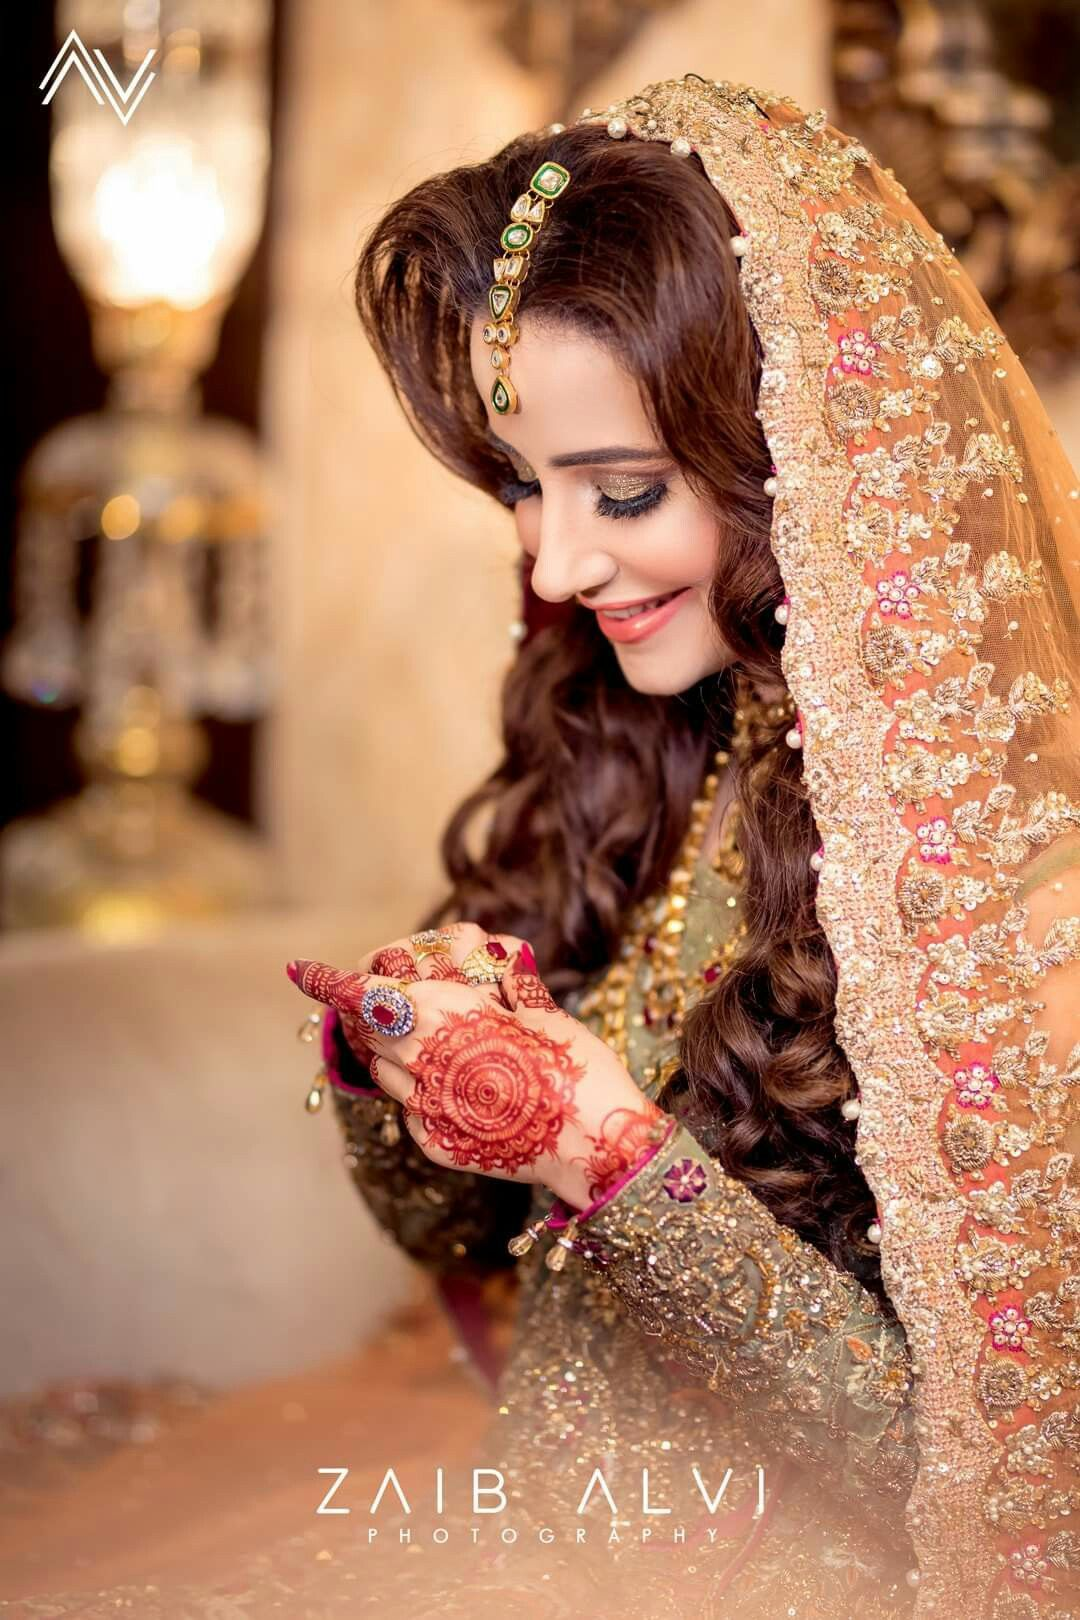 Pin By The Kiznaive On Global Fashion 4 Pakistani Bridal Makeup Pakistani Bridal Makeup Hairstyles Pakistani Bridal Dresses